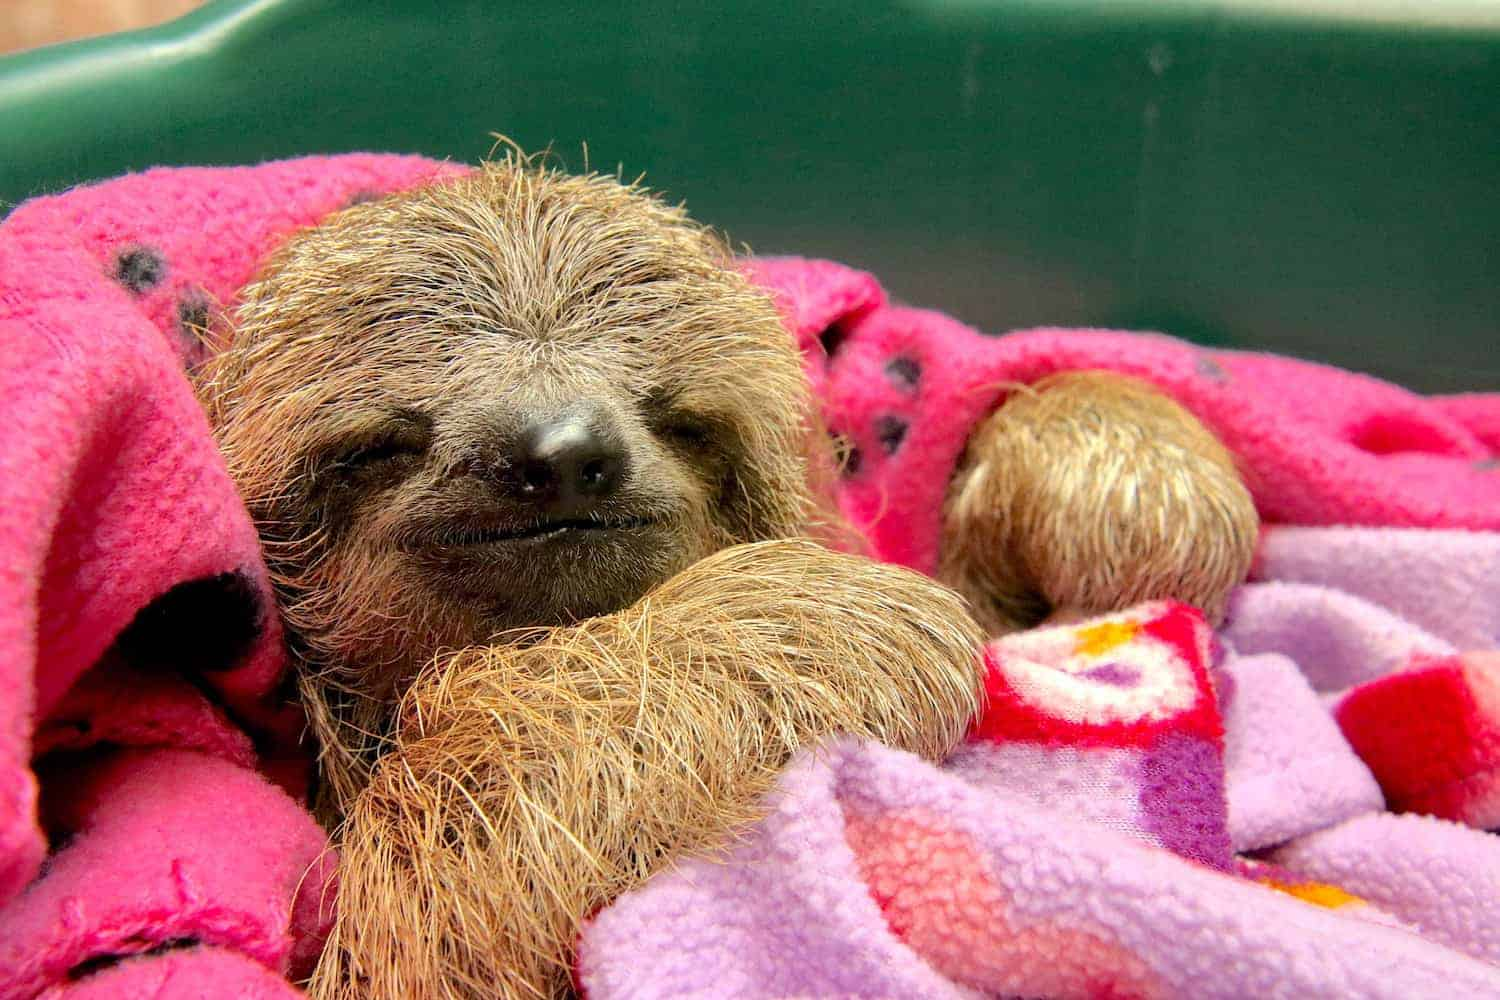 Muffin the sloth at Toucan Rescue Ranch in Costa Rica.